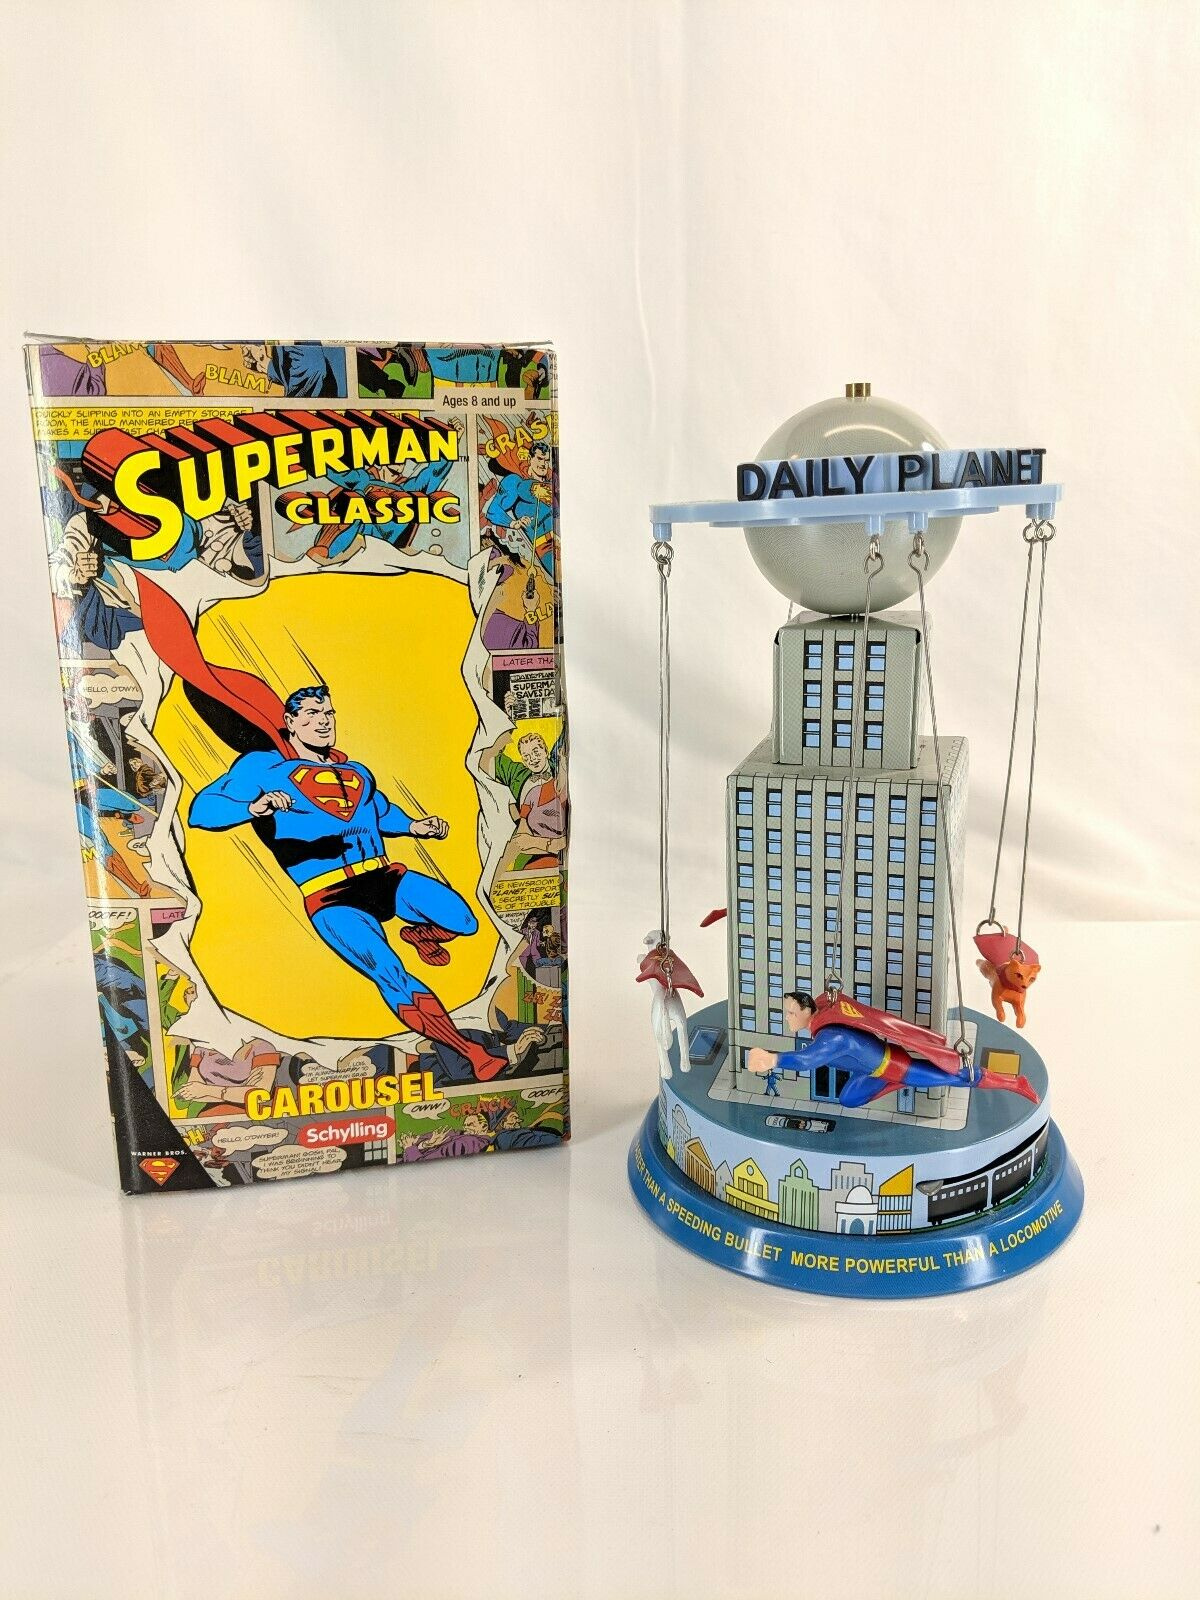 Superhomme Classic Tin voitureousel Toy  Warner Bros 2001 Krypto Supergirl Streaky Used  expédition rapide et meilleur service